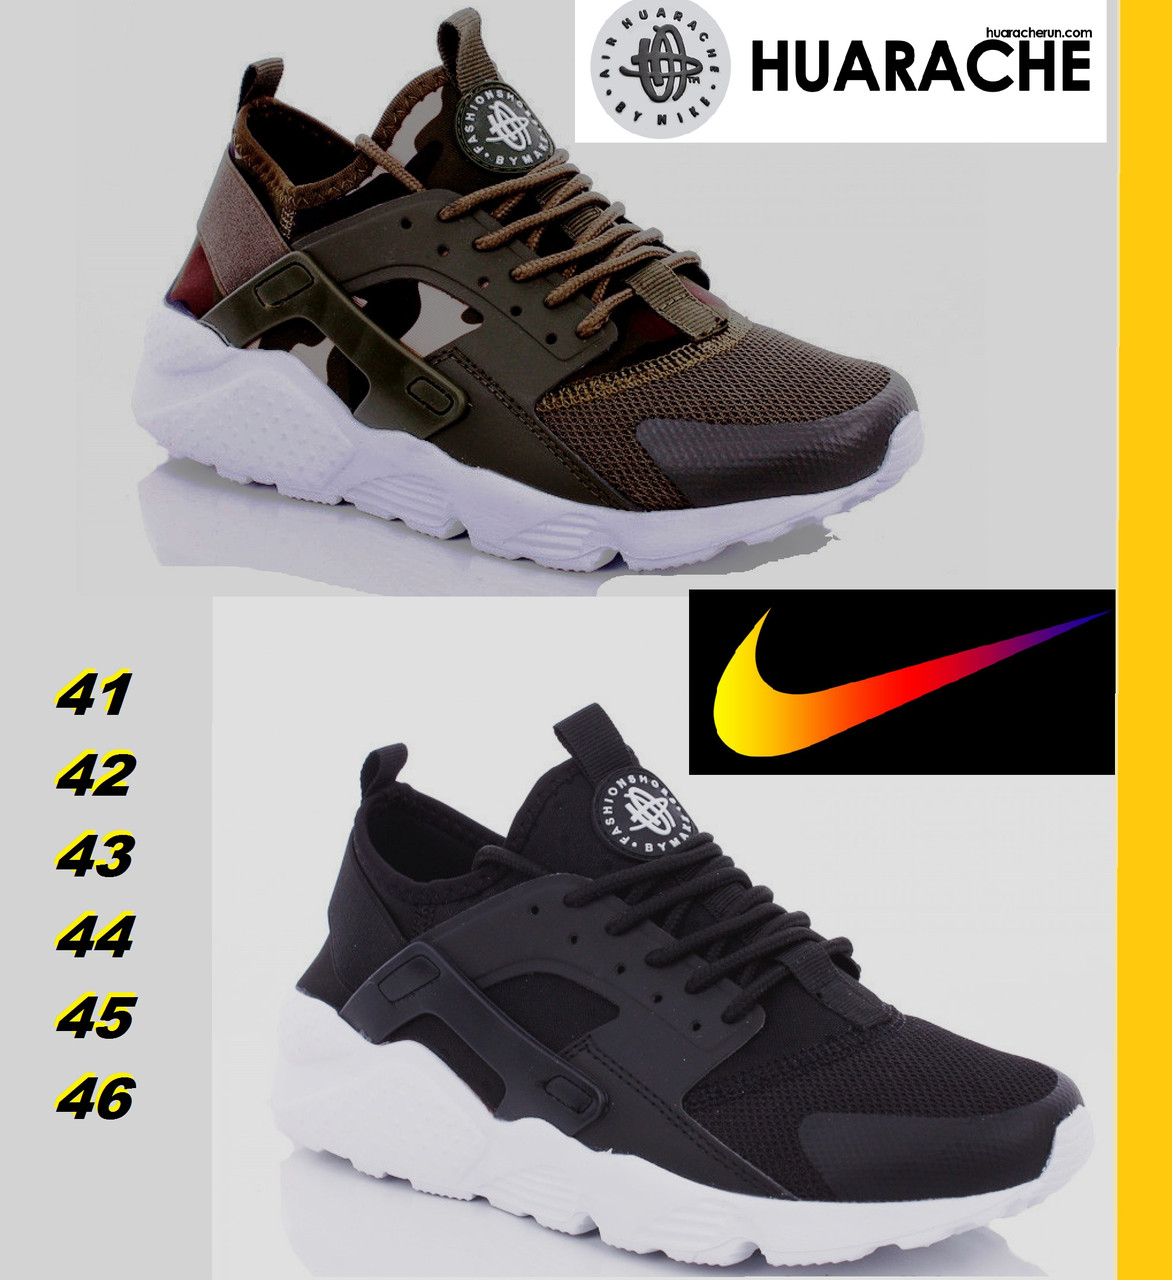 Кроссовки мужские Nike Air Huarache - Camouflage and black.